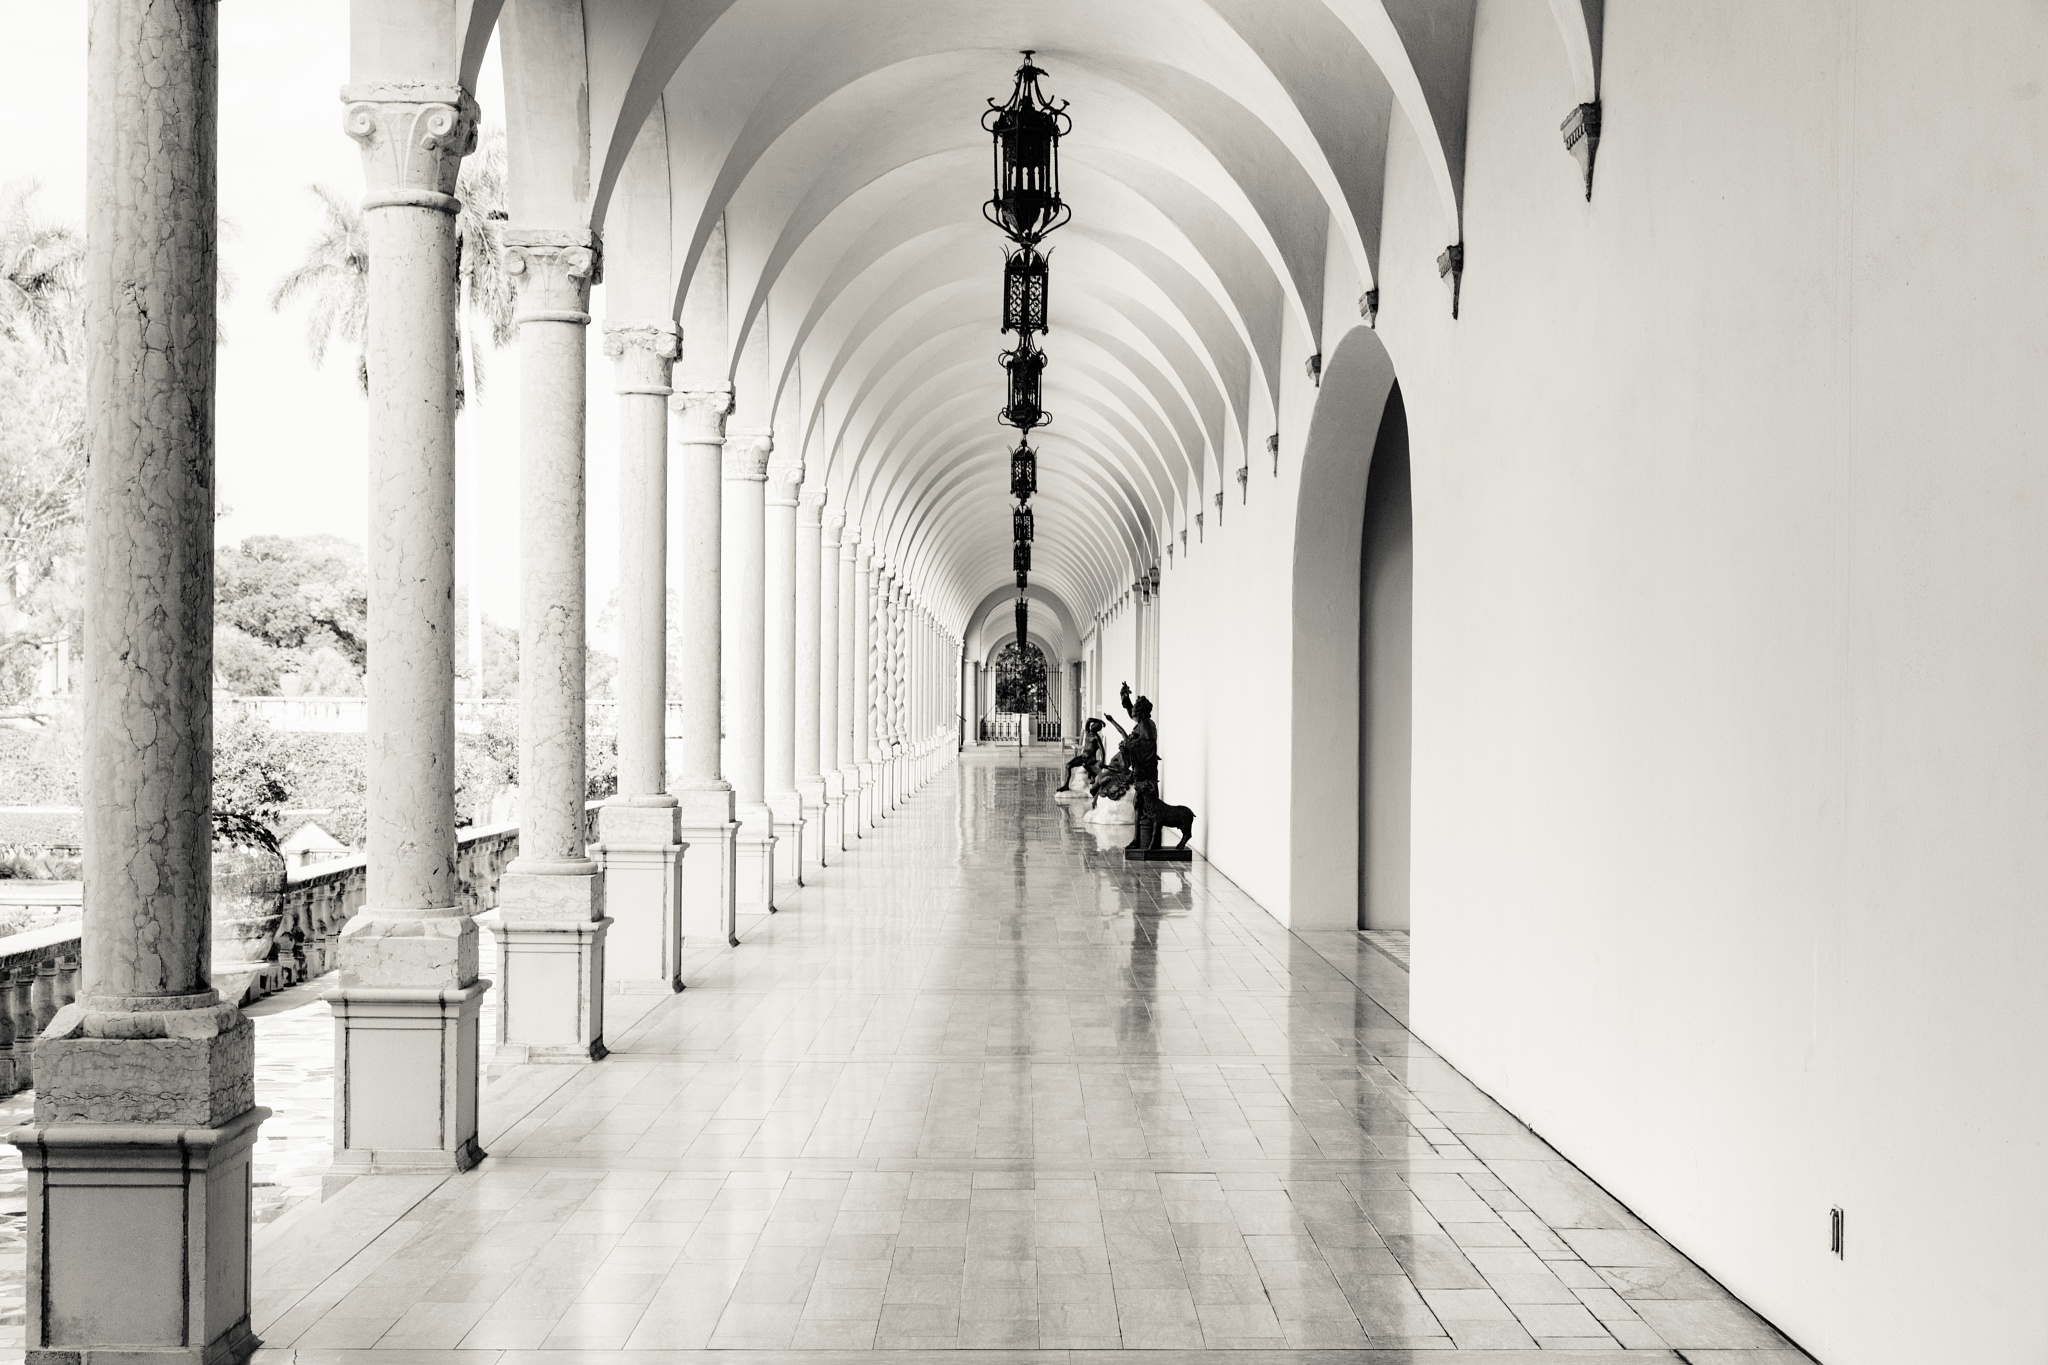 Hallway at the Ringling by Jens Unger